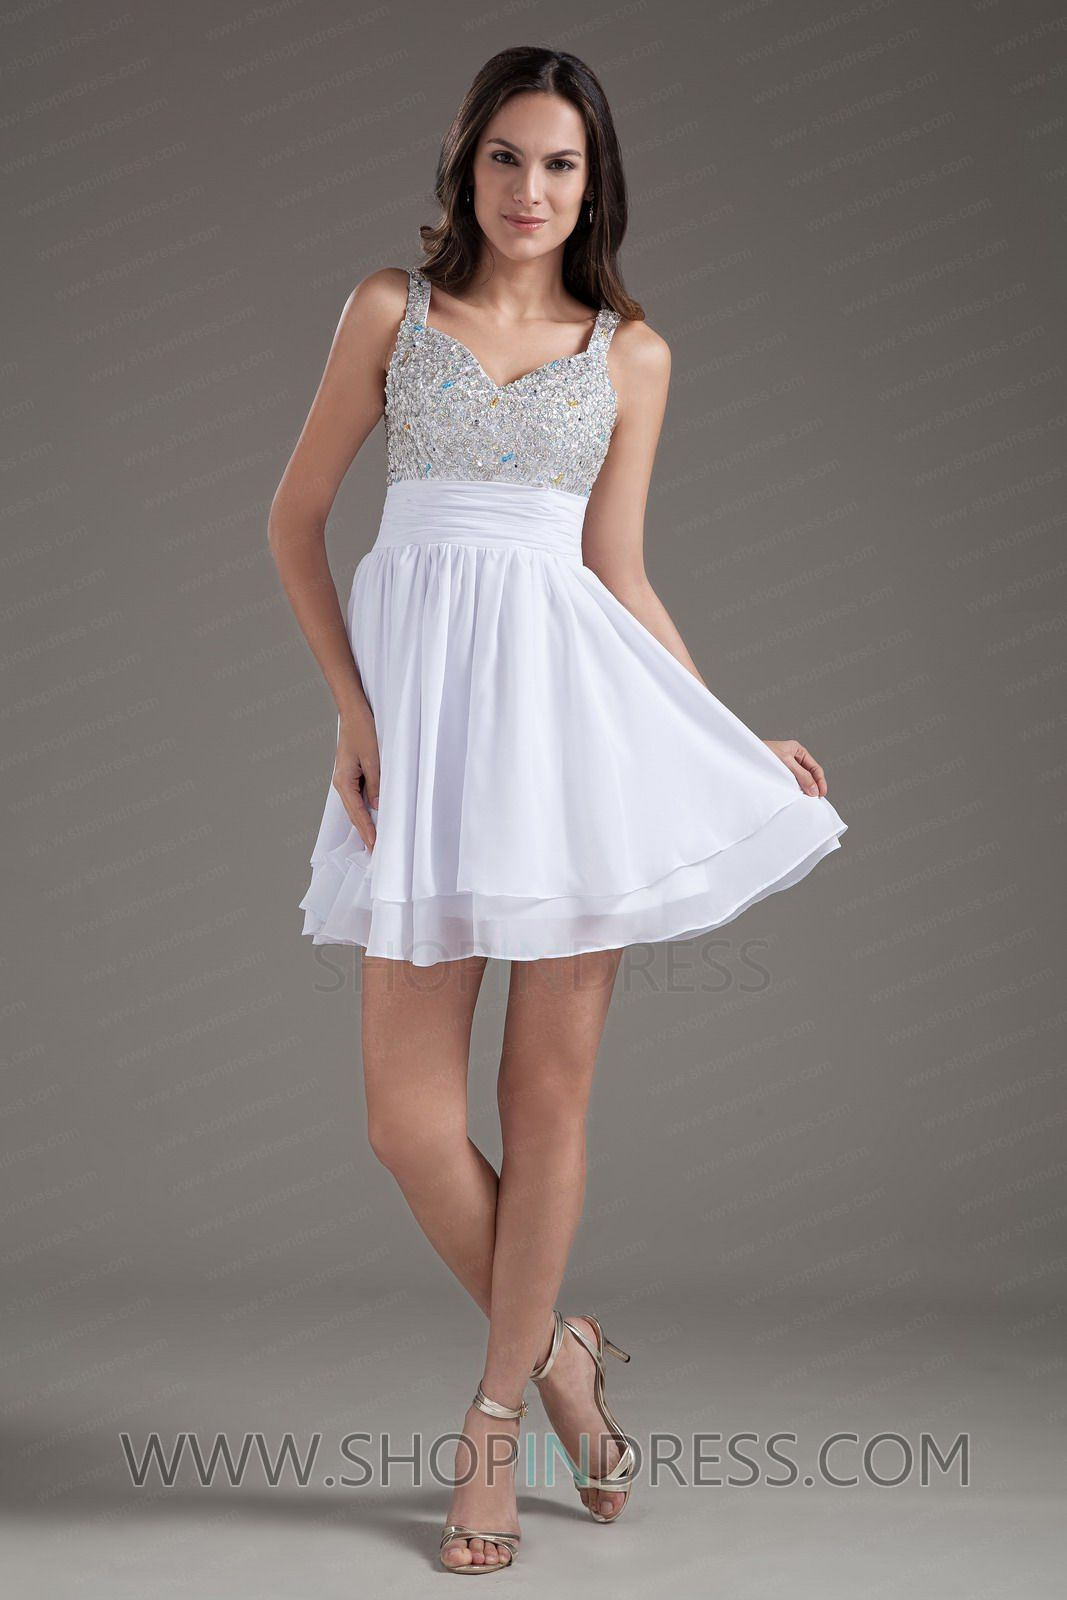 Strapless Scalloped Lace Flared Short White Cocktail Dress [La ...